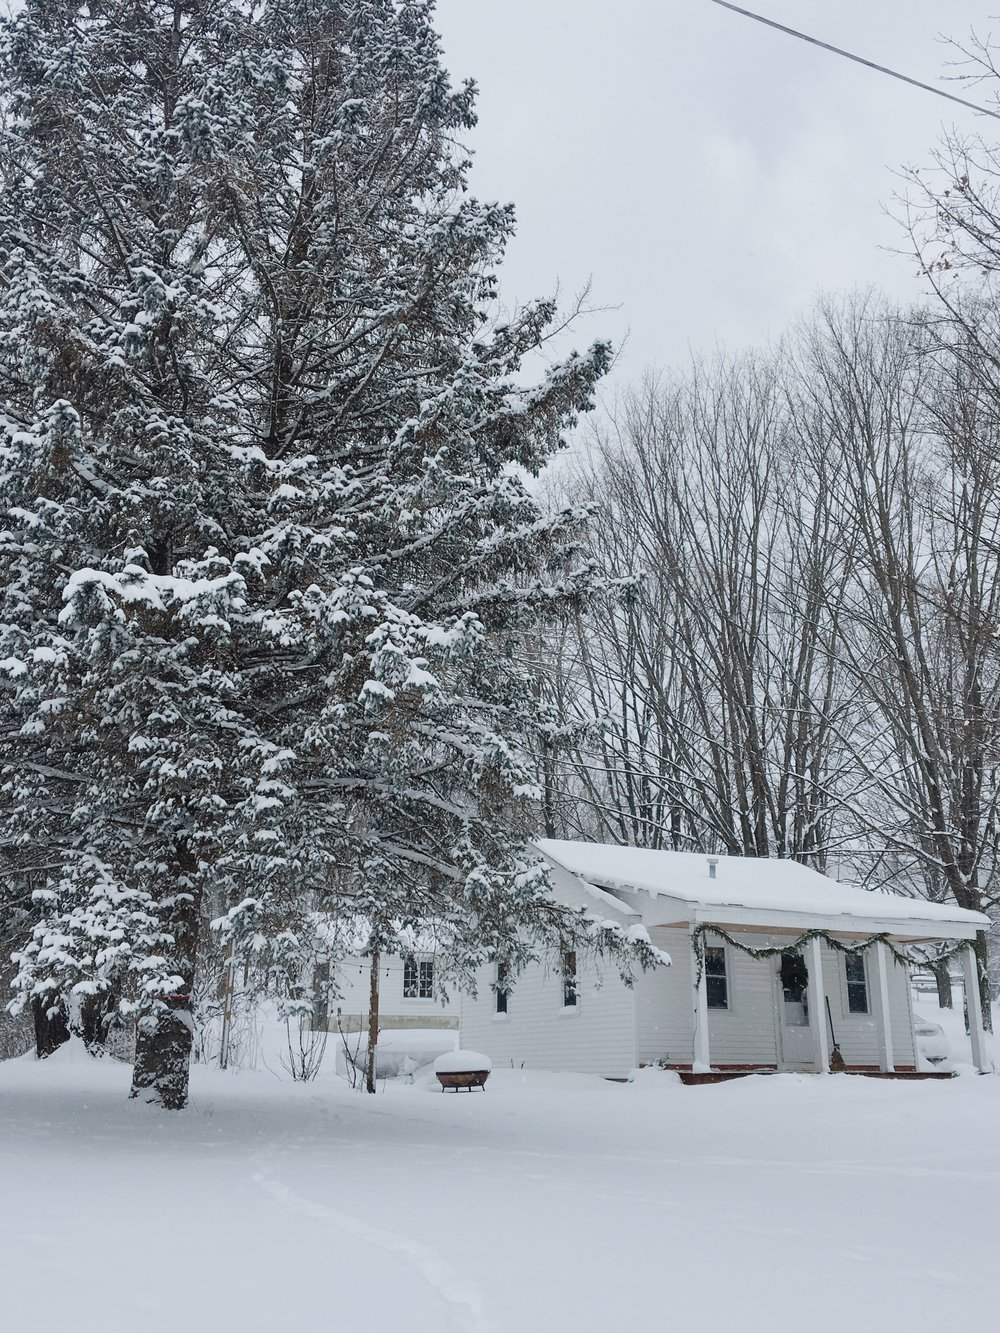 A snow covered small cabin in Northern Michigan in winter with large pines covered in snow